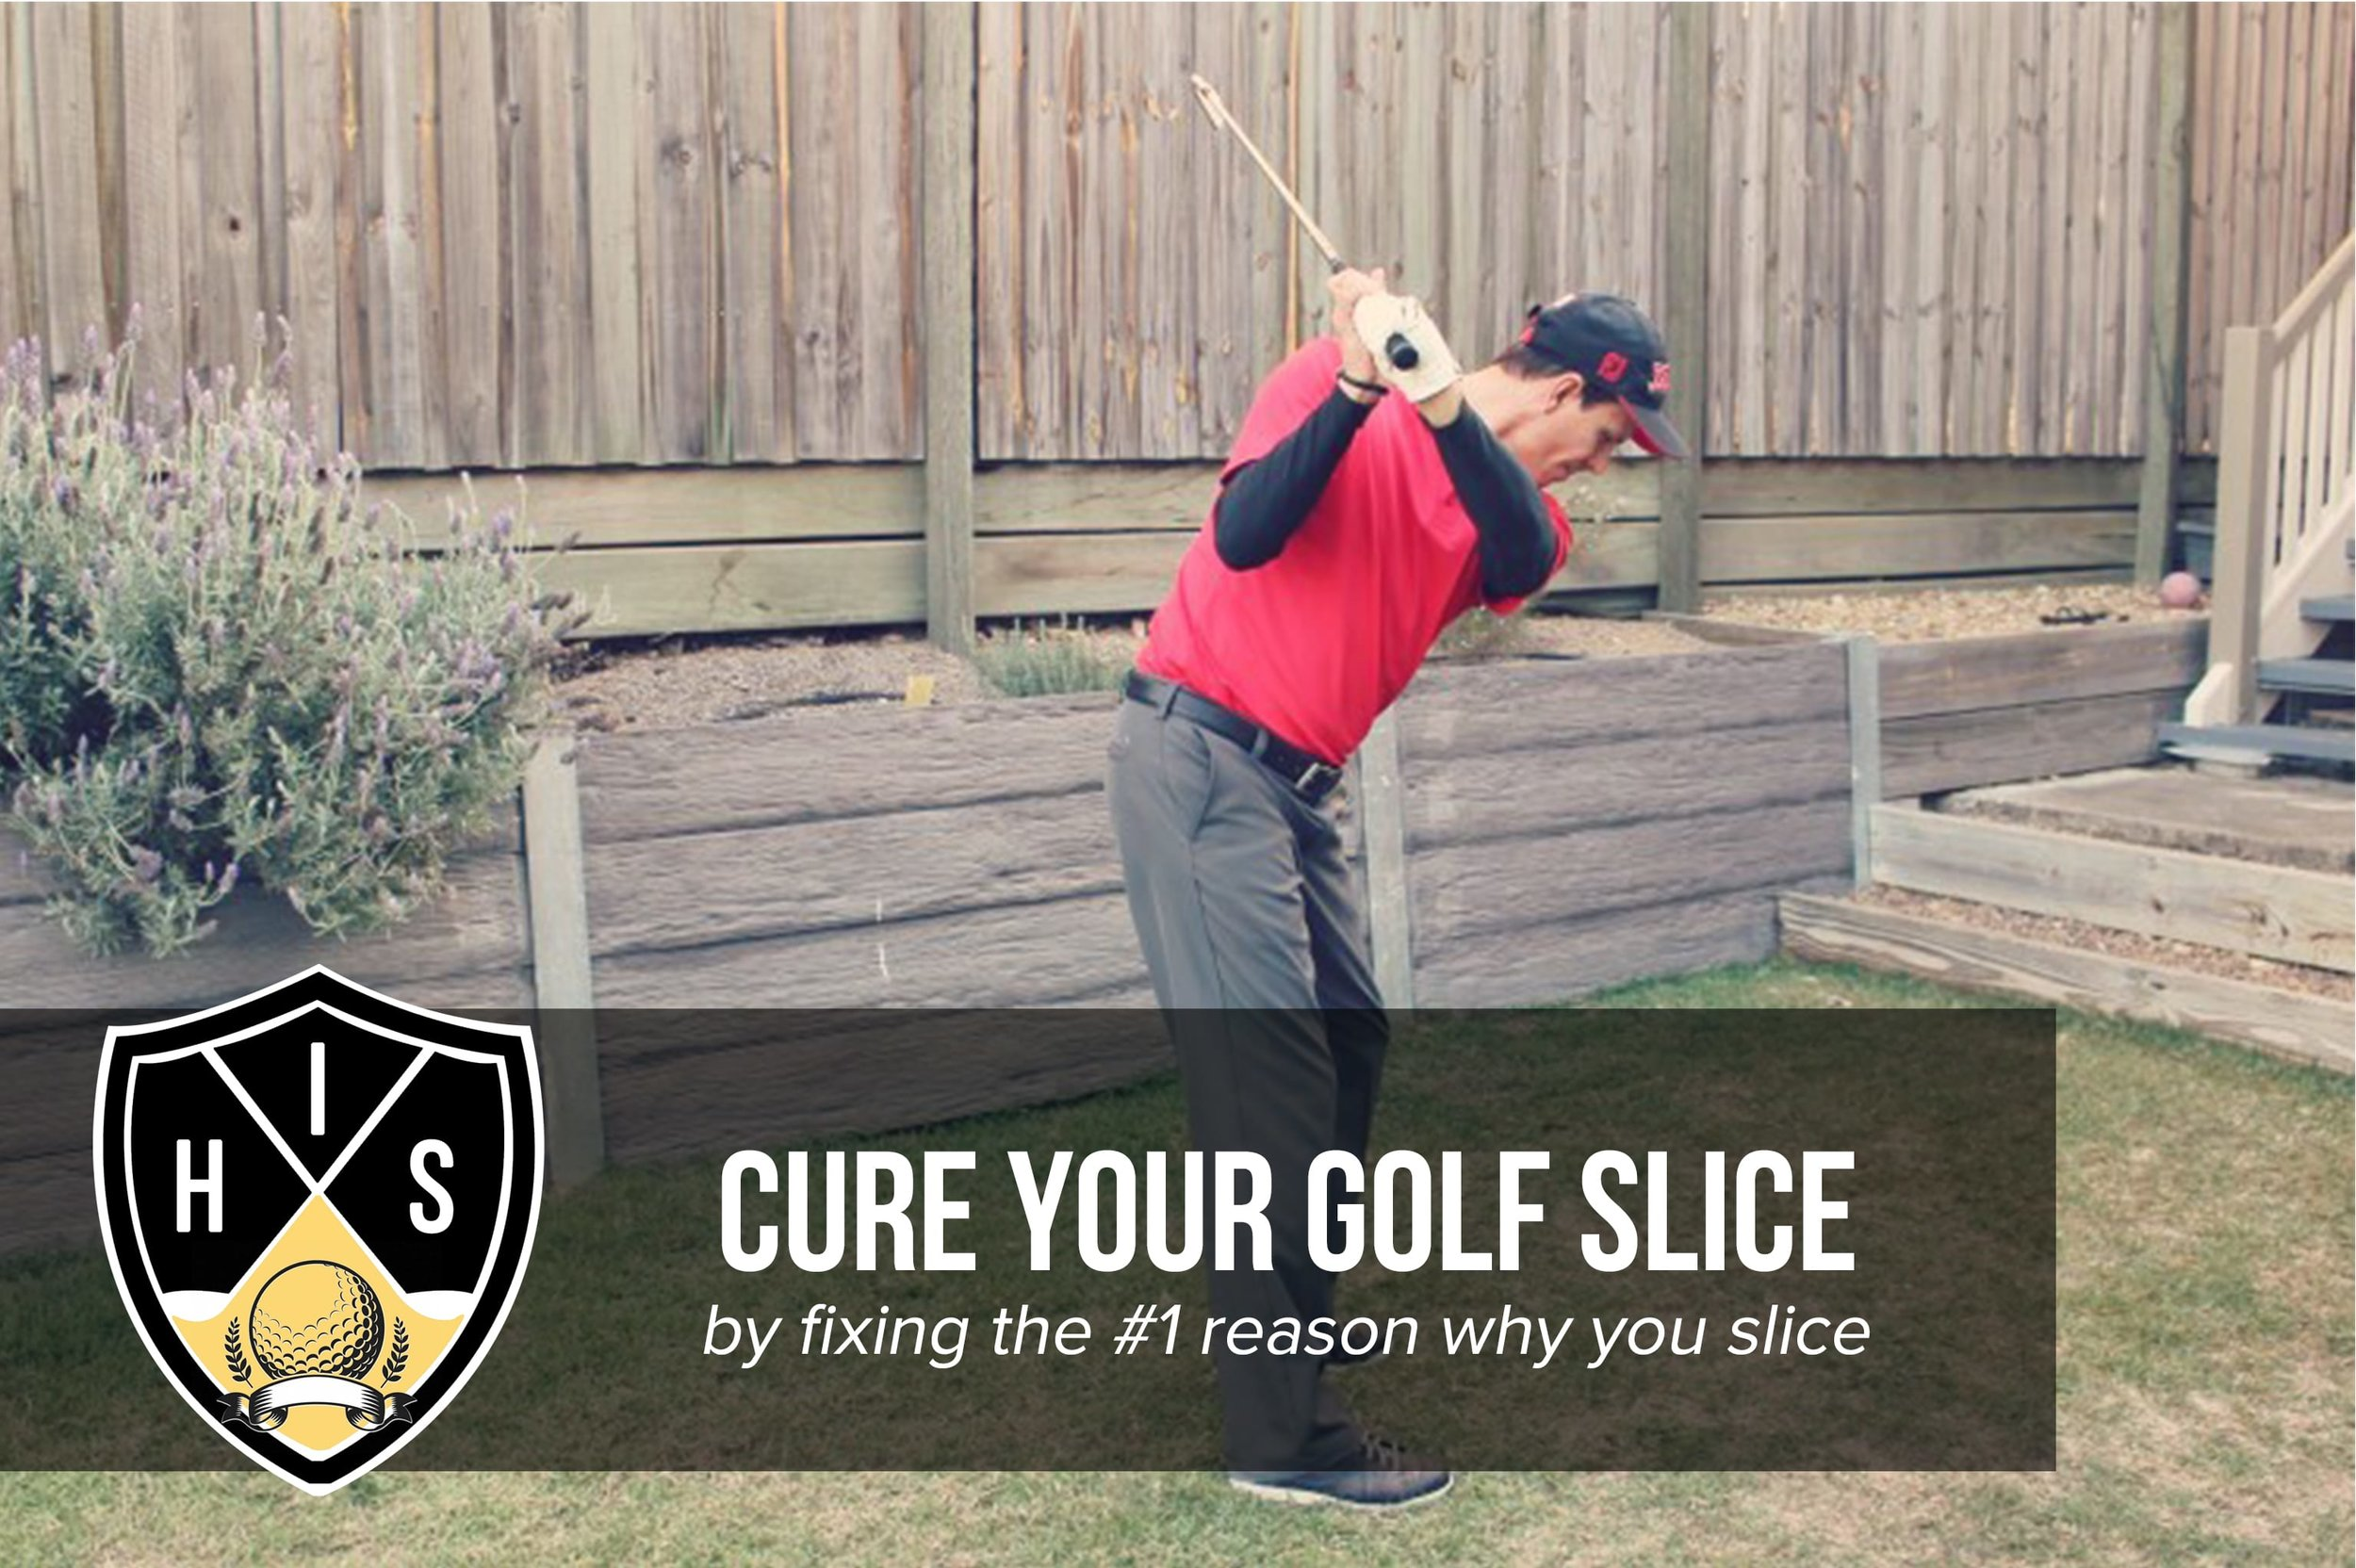 How to fix your golf slice by understanding the number reason why you slice the golf ball